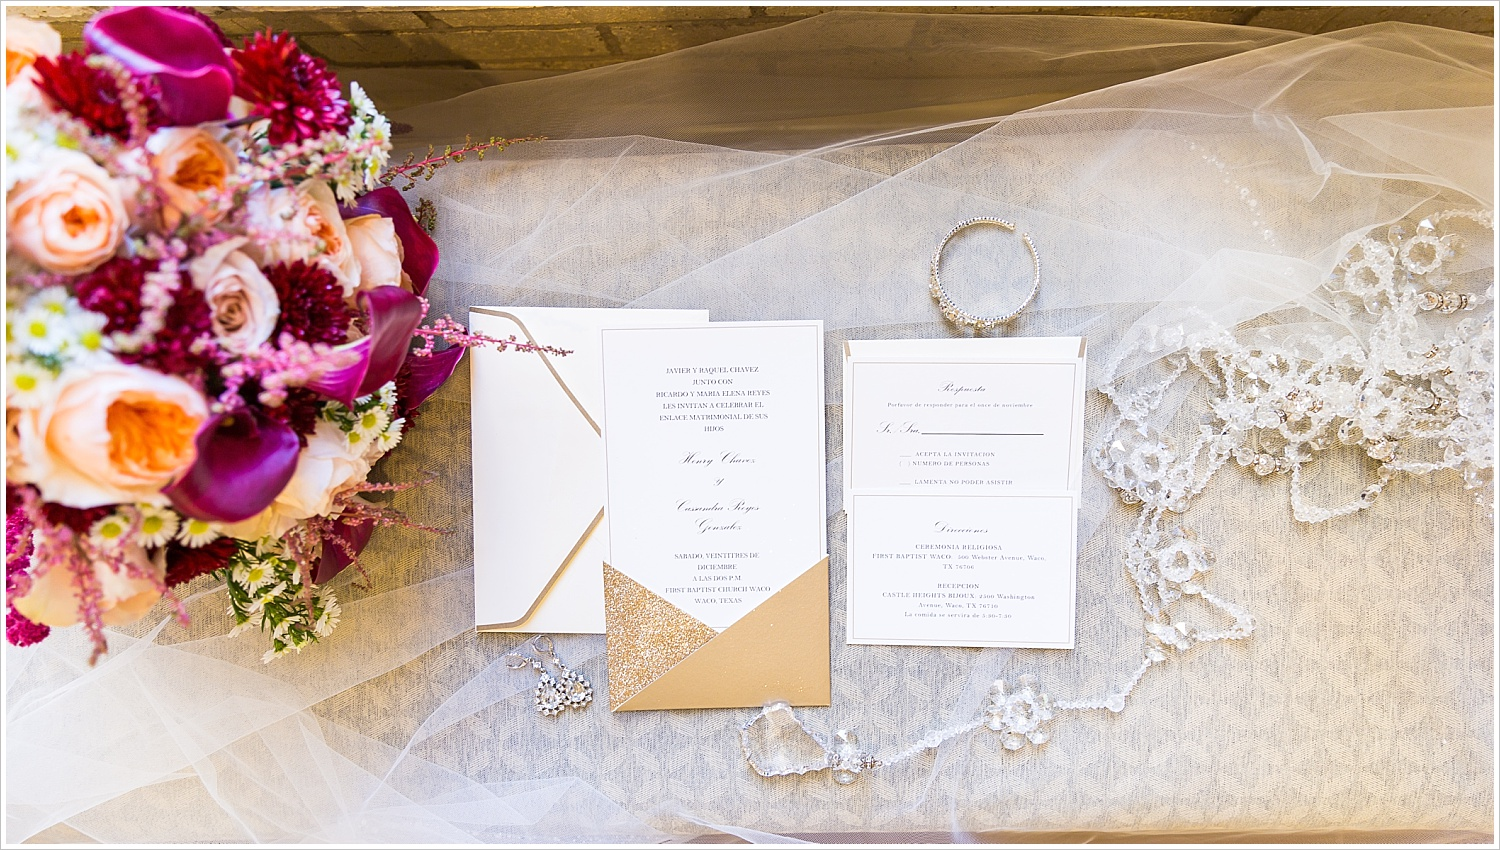 A calligraphy wedding invitation suite laid out on bride's veil, surrounded by bouquet and bride's jewelry - Jason & Melaina Photography - www.jasonandmelaina.com